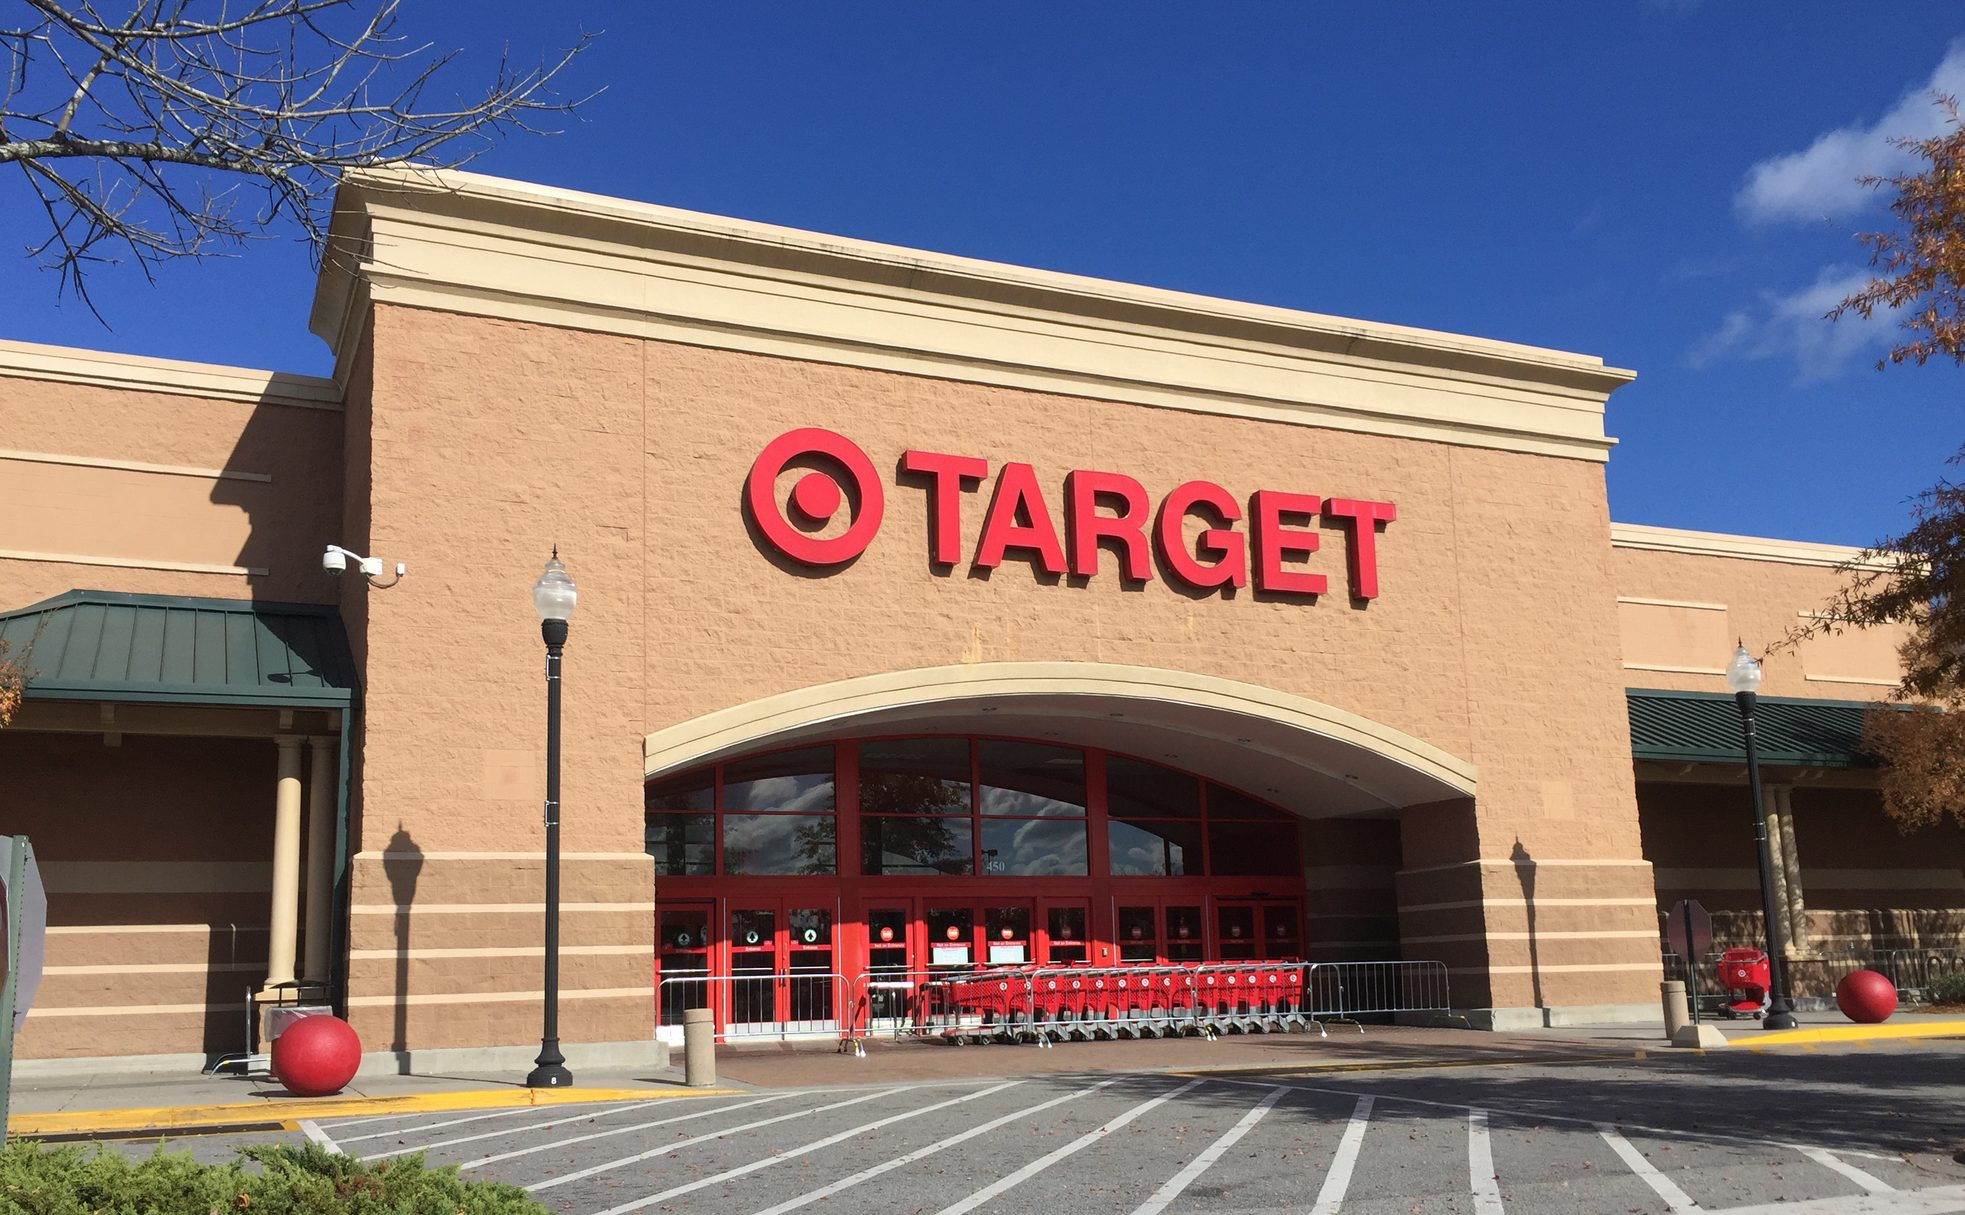 Target takes 10% off for military members & veterans